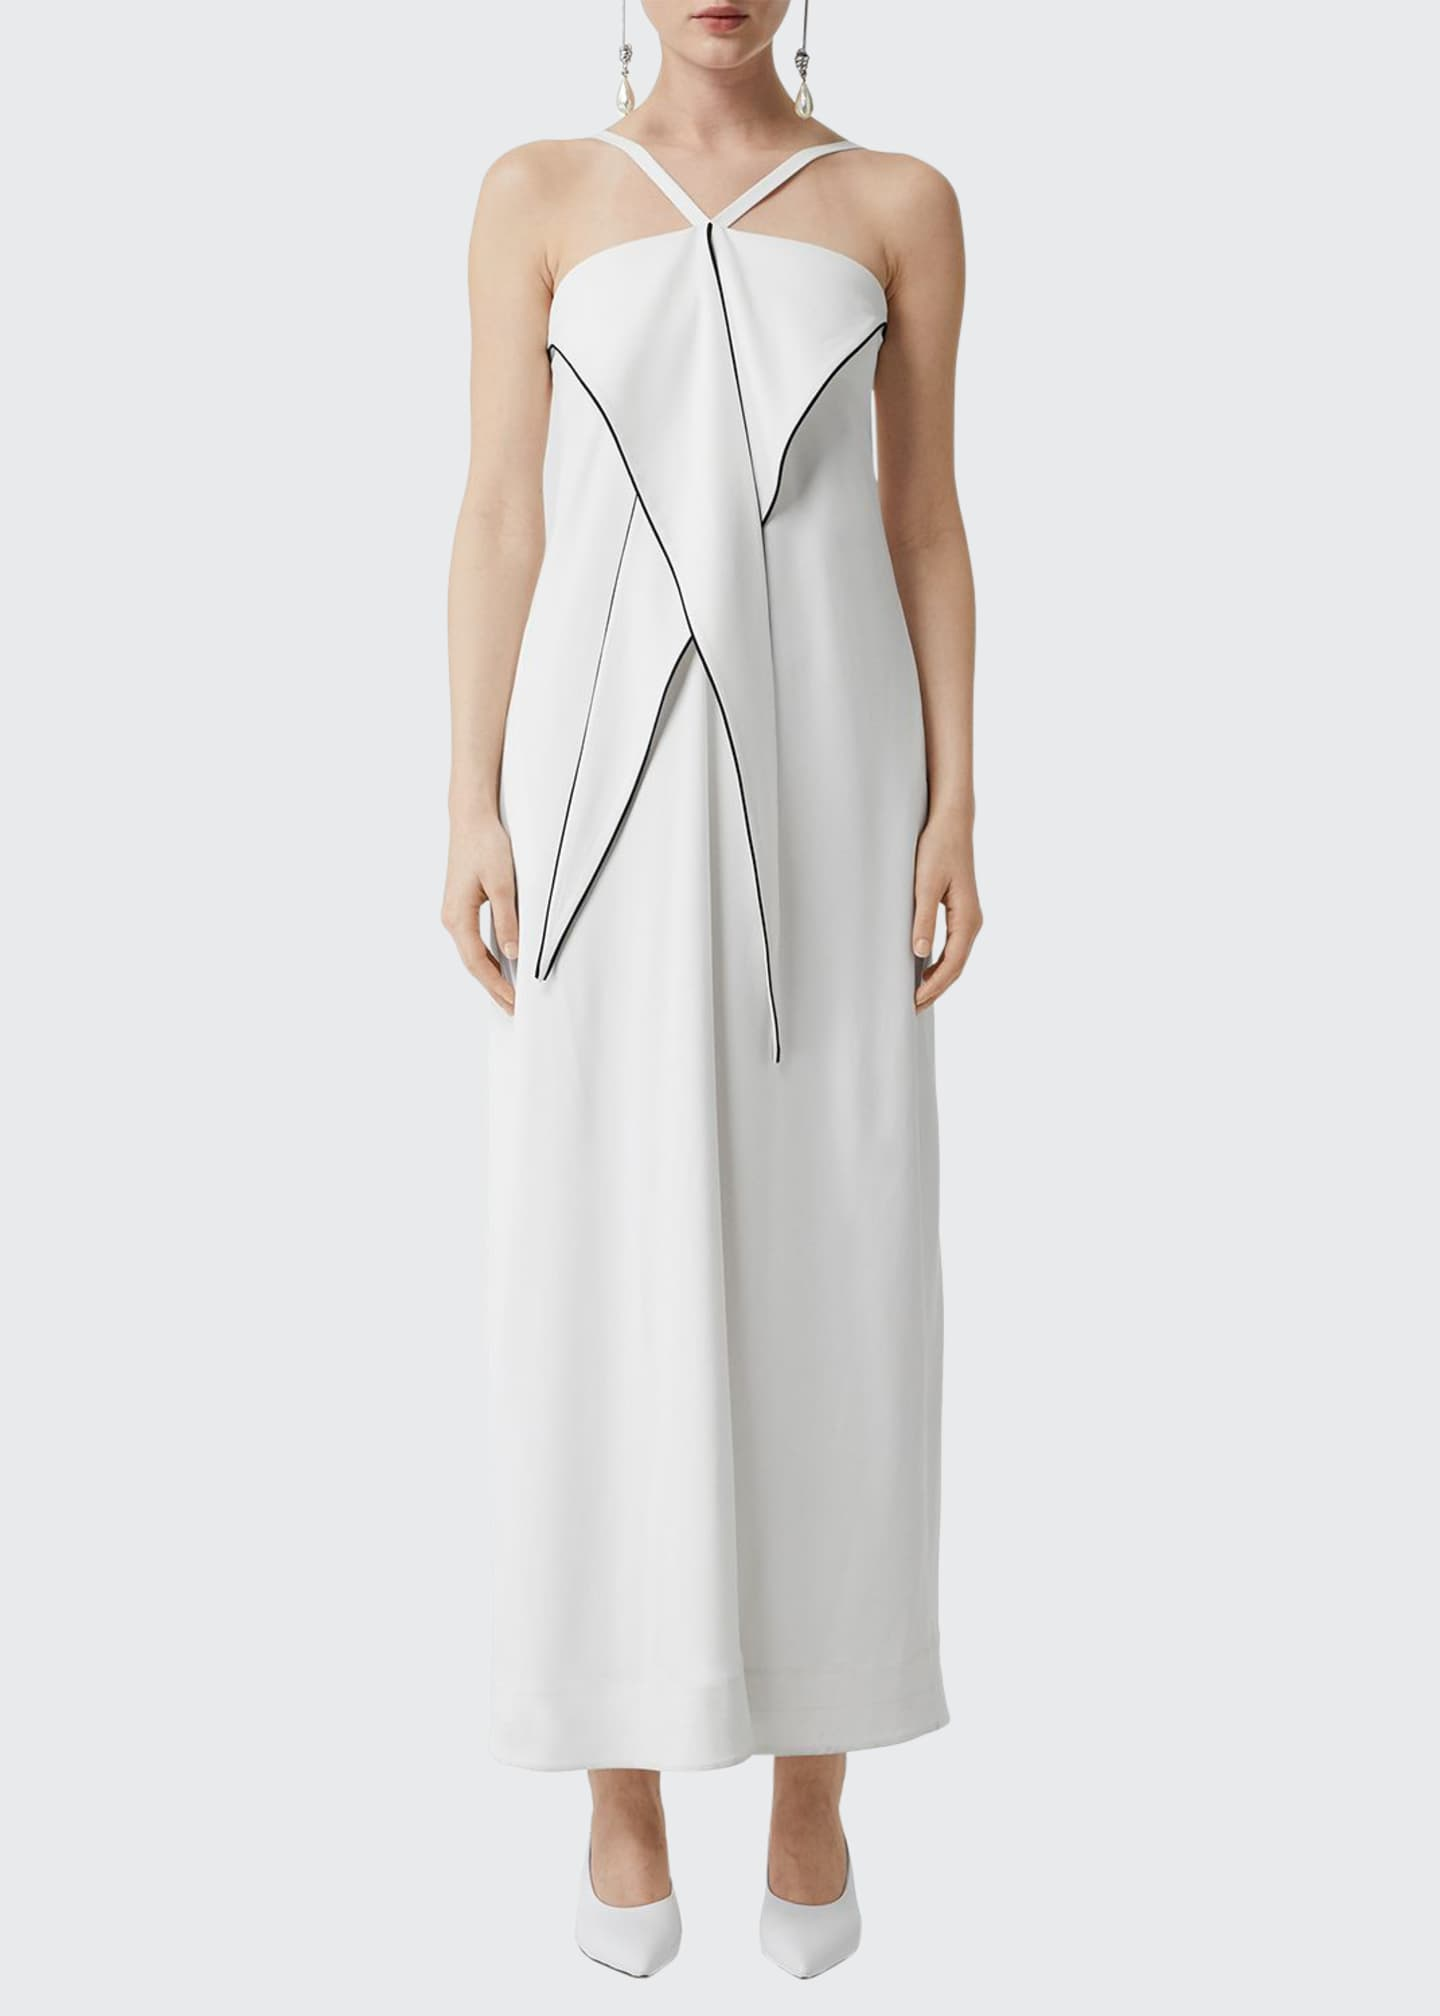 Burberry Draped Front Halter Dress